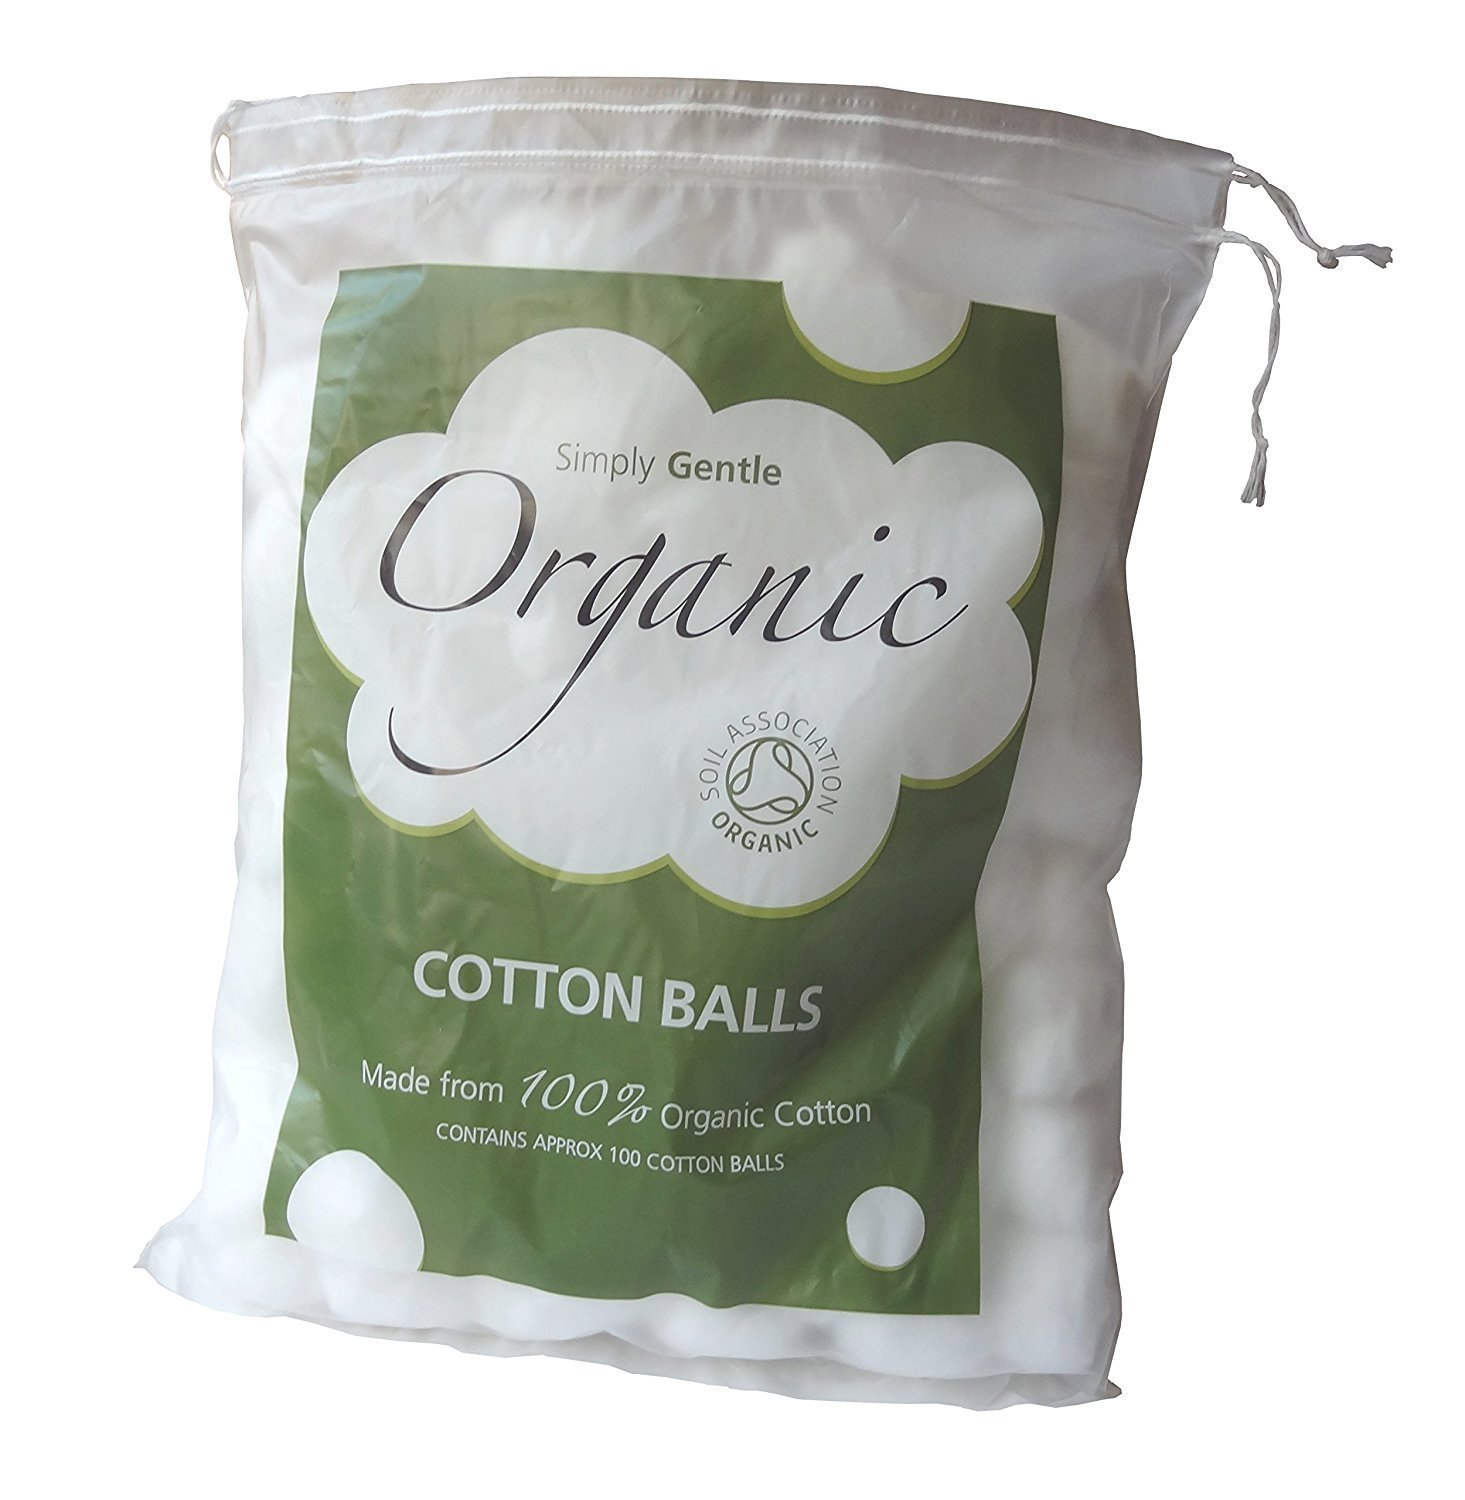 Simply Gentle Organic Cotton - Pack of 100 Balls Macdonald and Taylor 68193